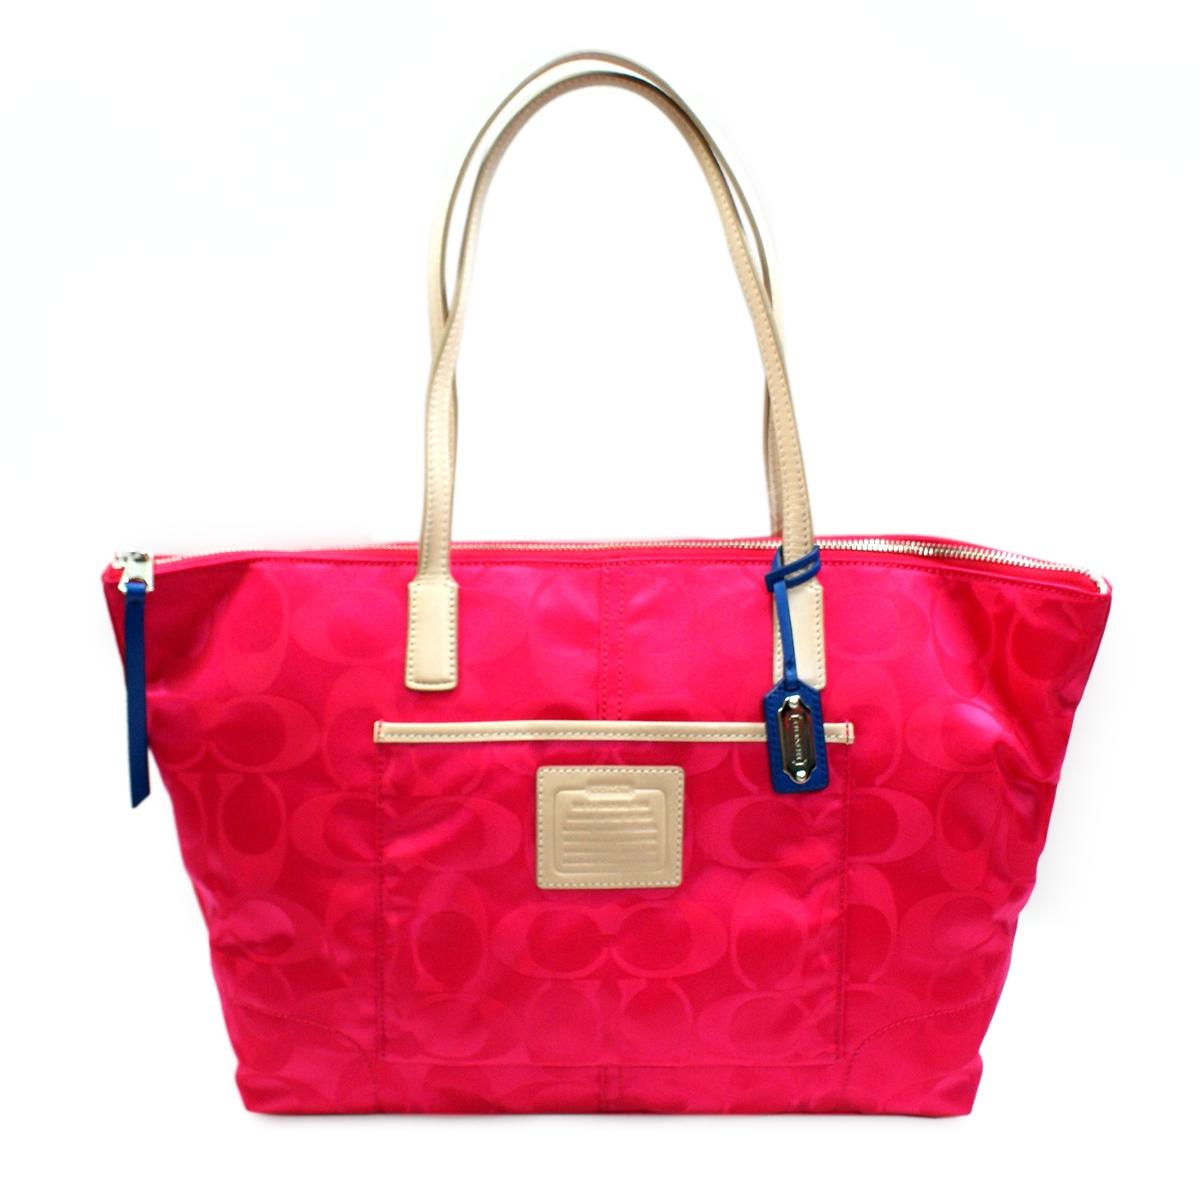 Coach Signature Nylon East West Zip Tote Pink Ruby 24862